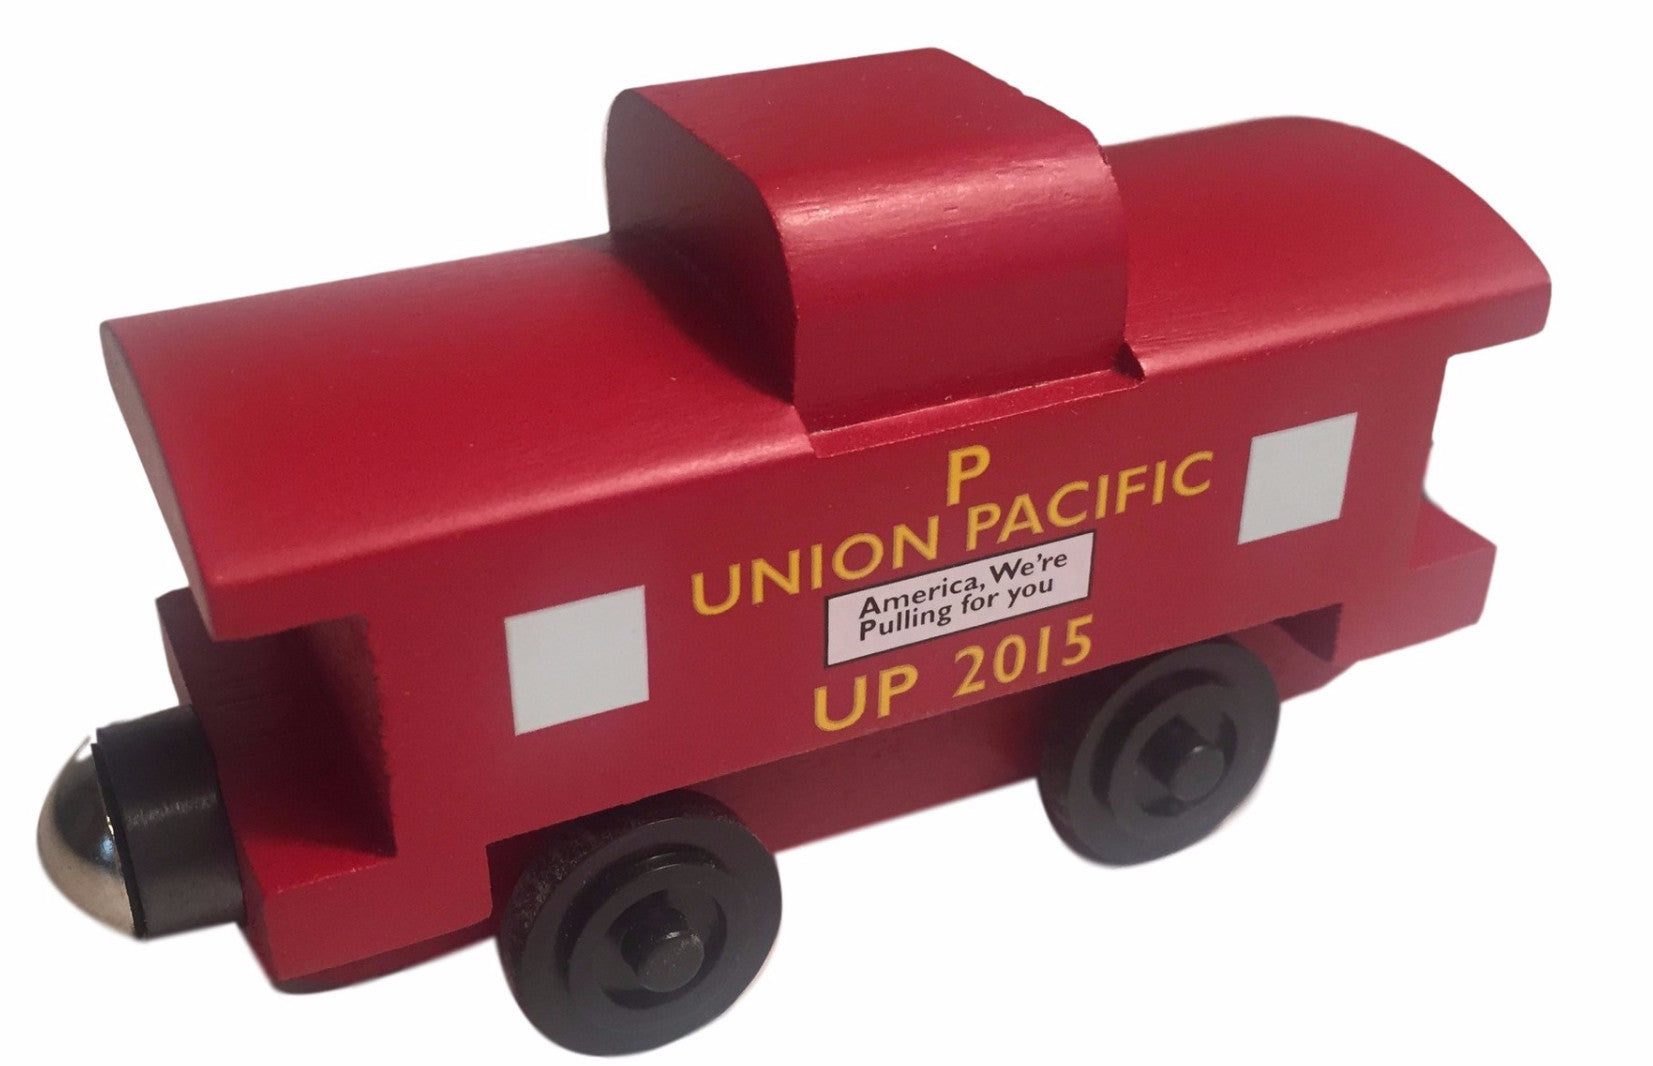 Whittle Shortline Railroad Union Pacific Caboose Wooden Toy Train